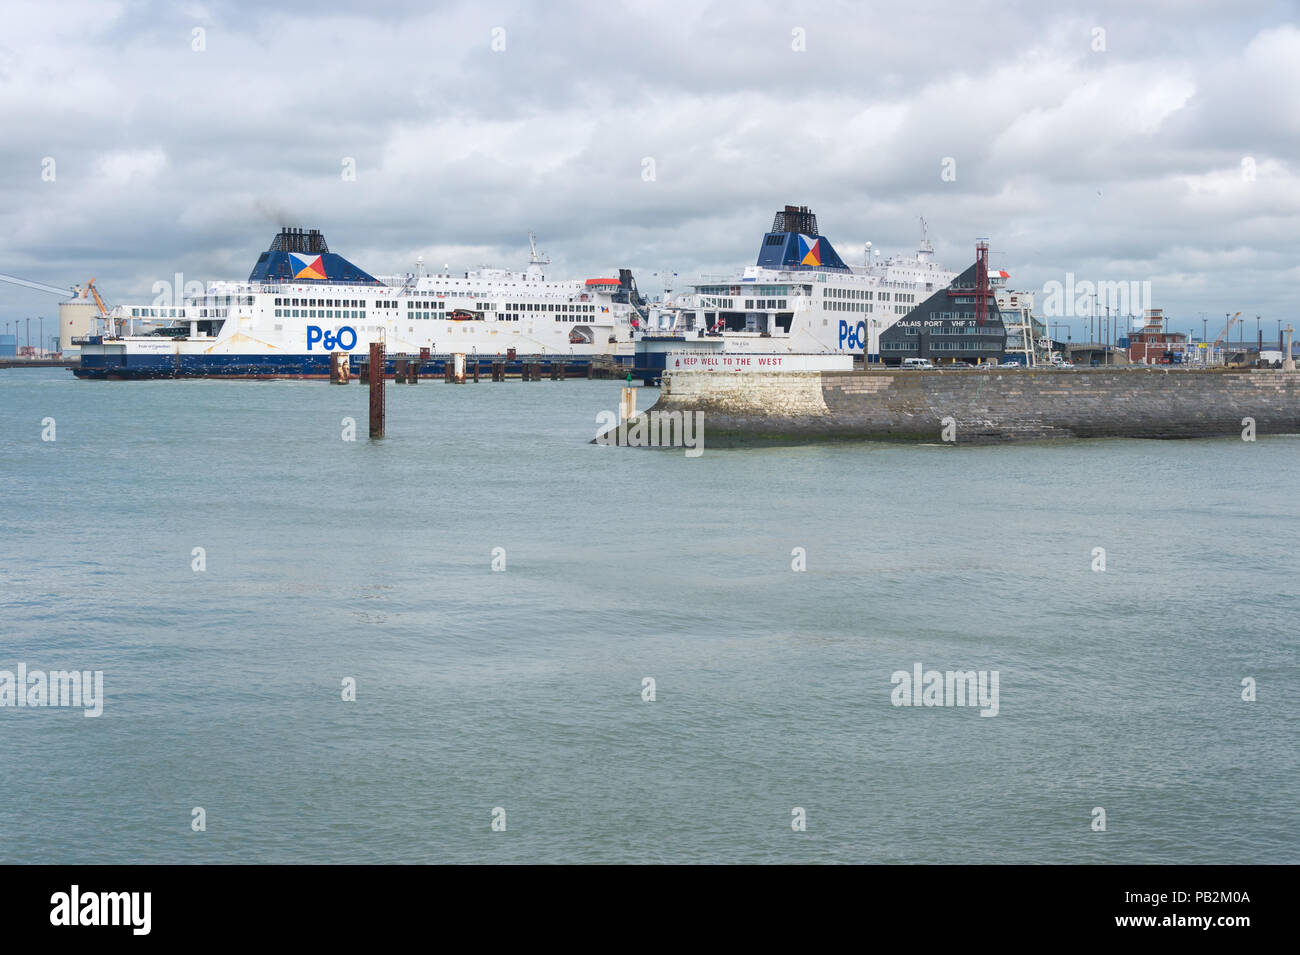 Calais, France - 19 June 2018: P&O cross Channel ferries docked in the port of Calais - Stock Image